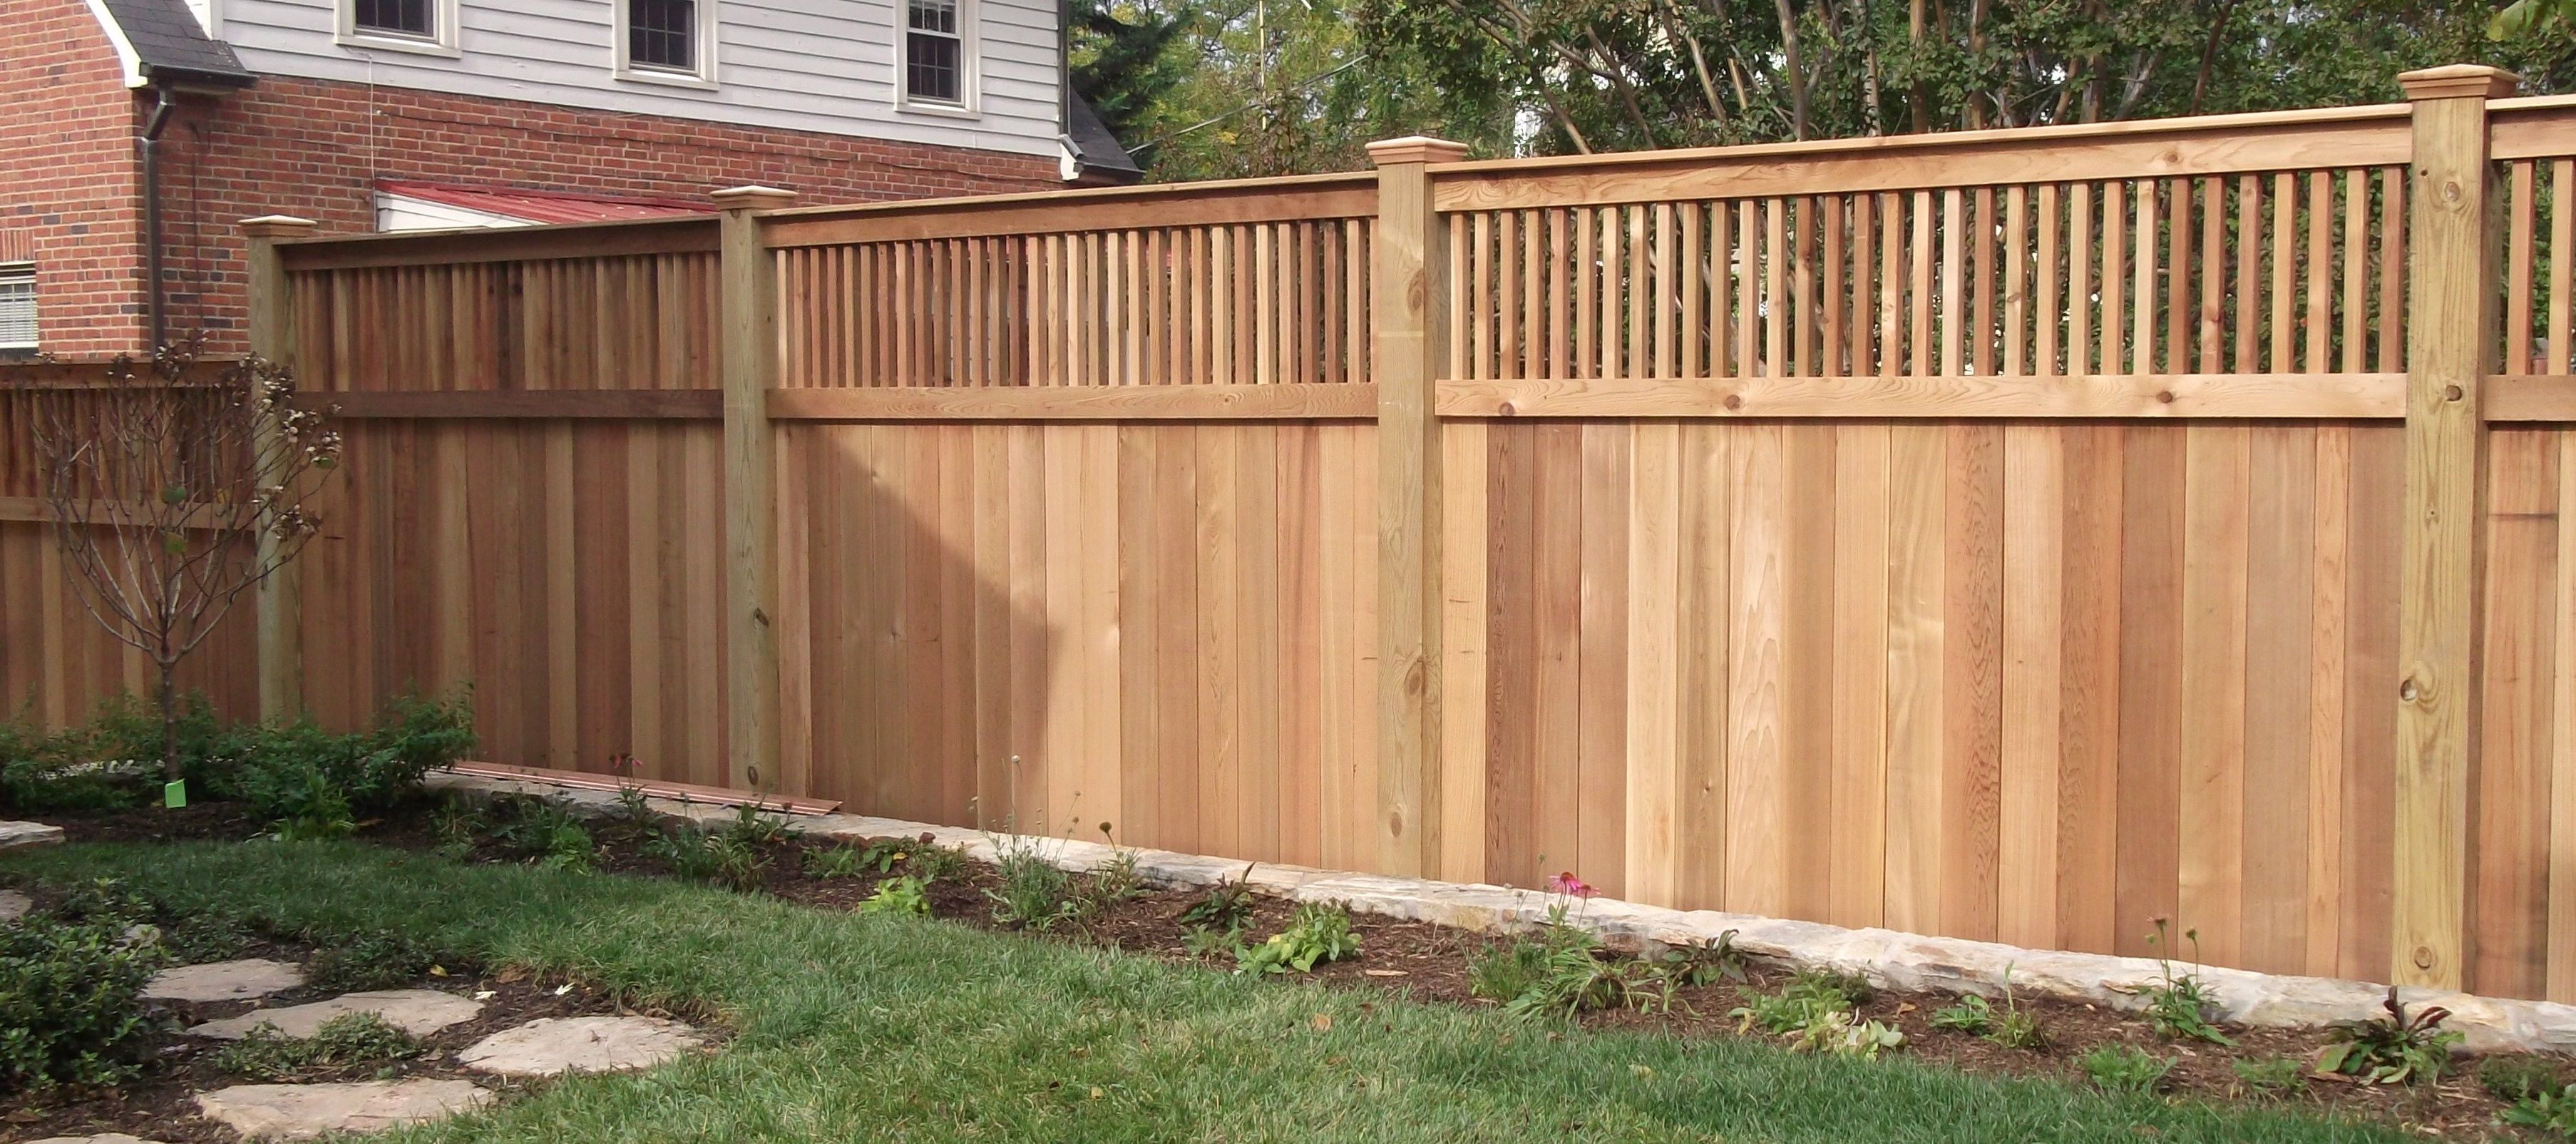 Classy pine stockade pressure treated wood fence panel for for Simple fence plans